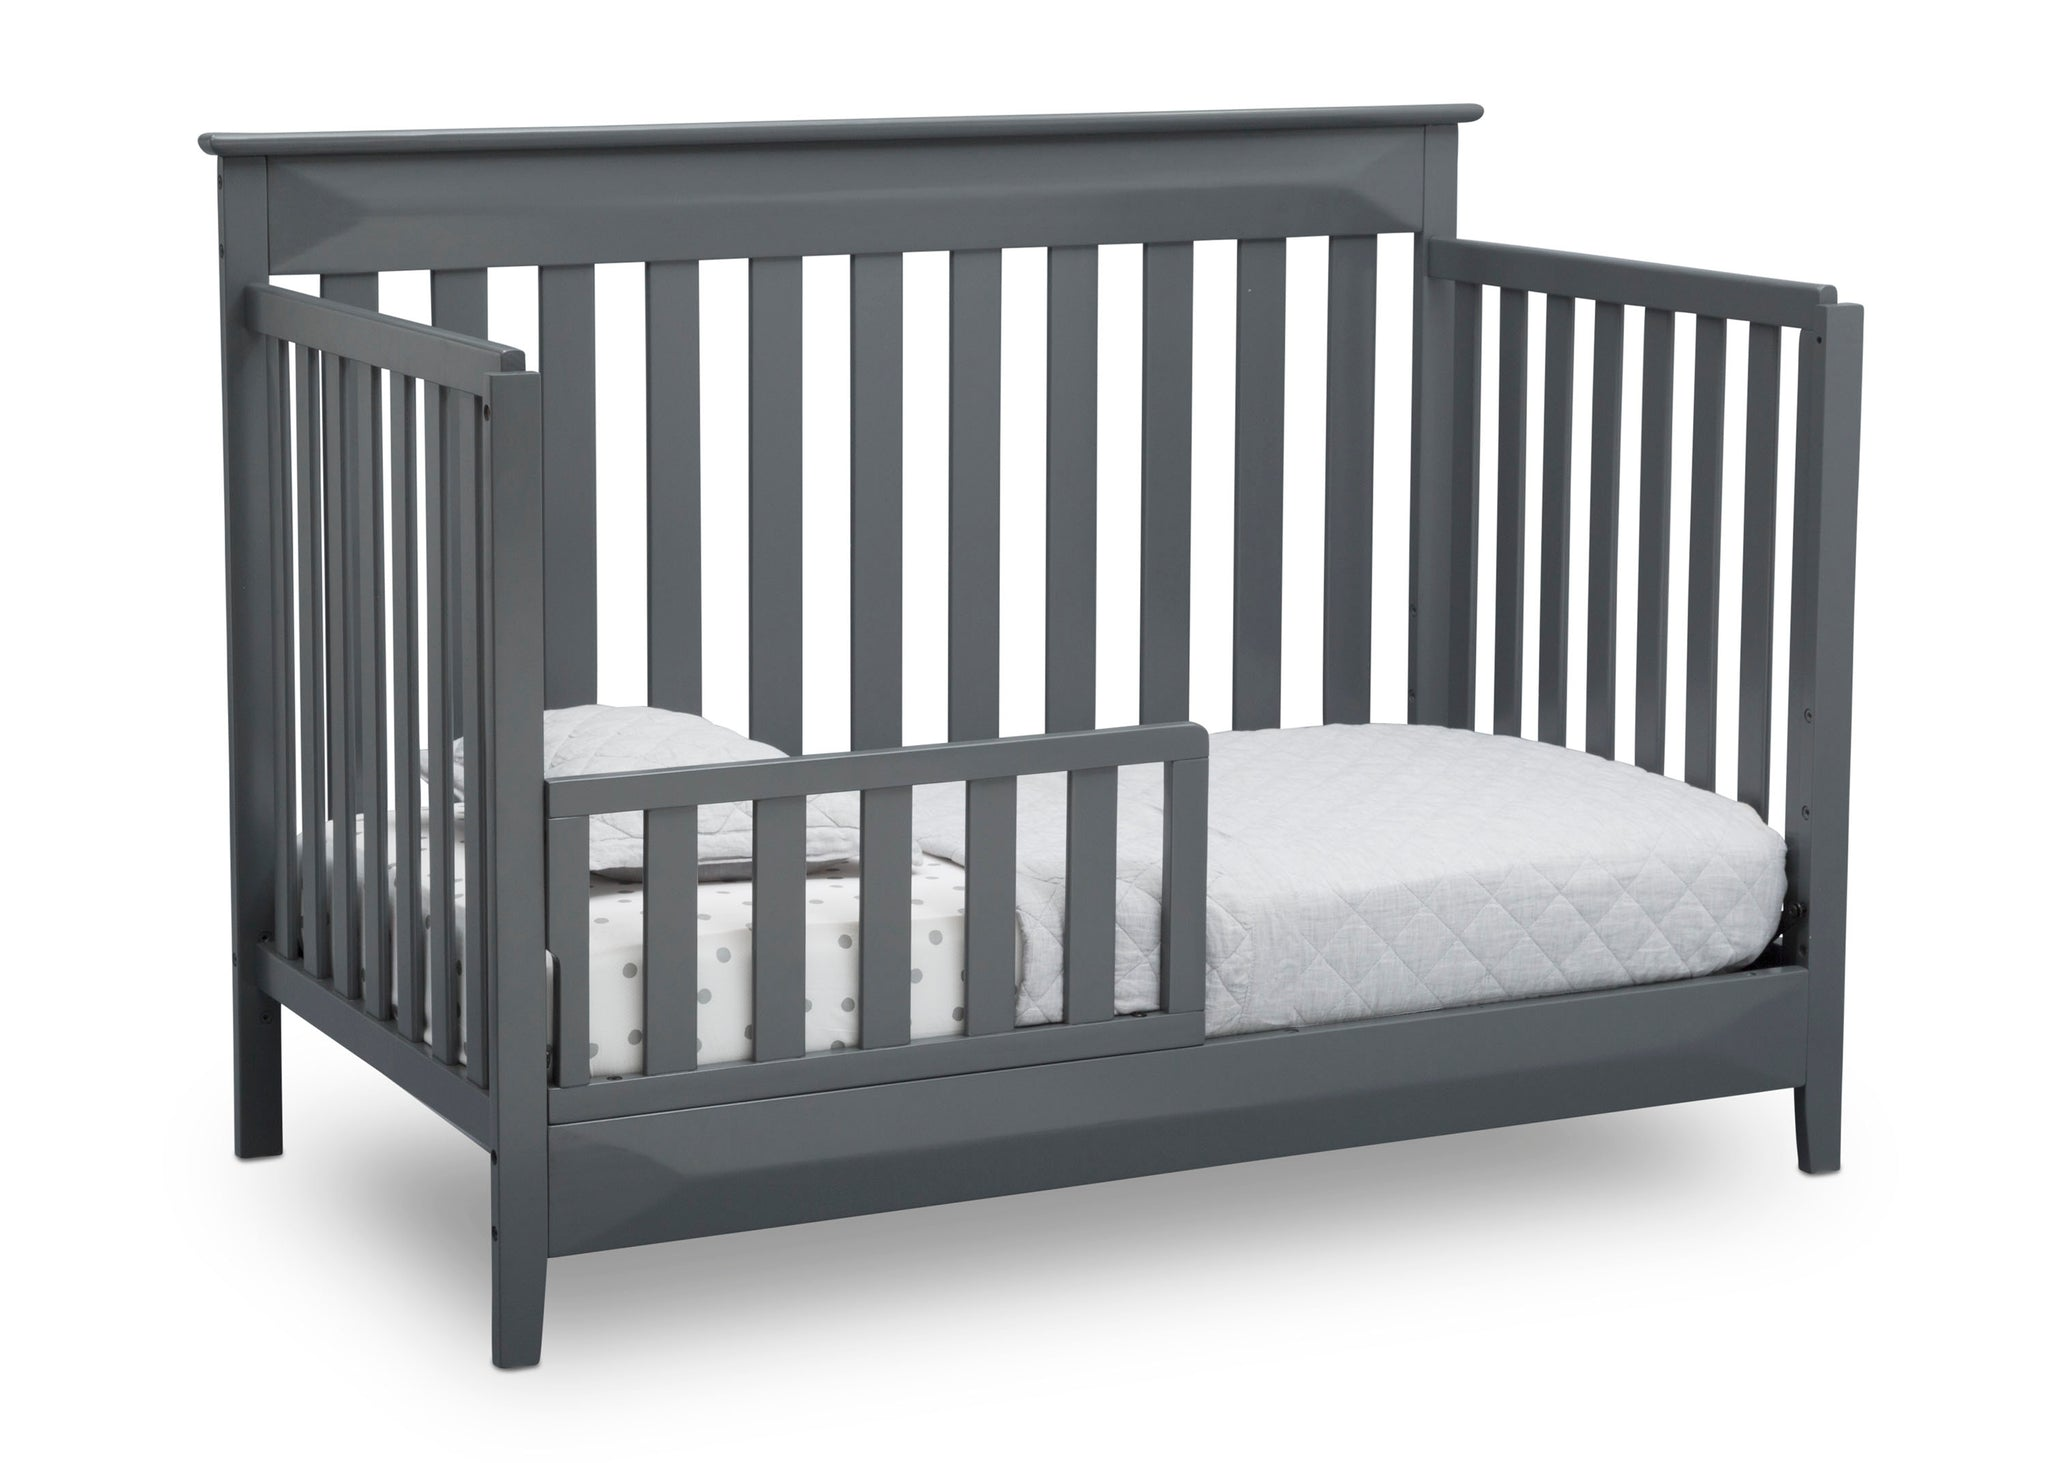 Delta Children Charcoal Grey (029) Cameron 4-in-1 Convertible Baby Crib Toddler Bed Angled View a5a